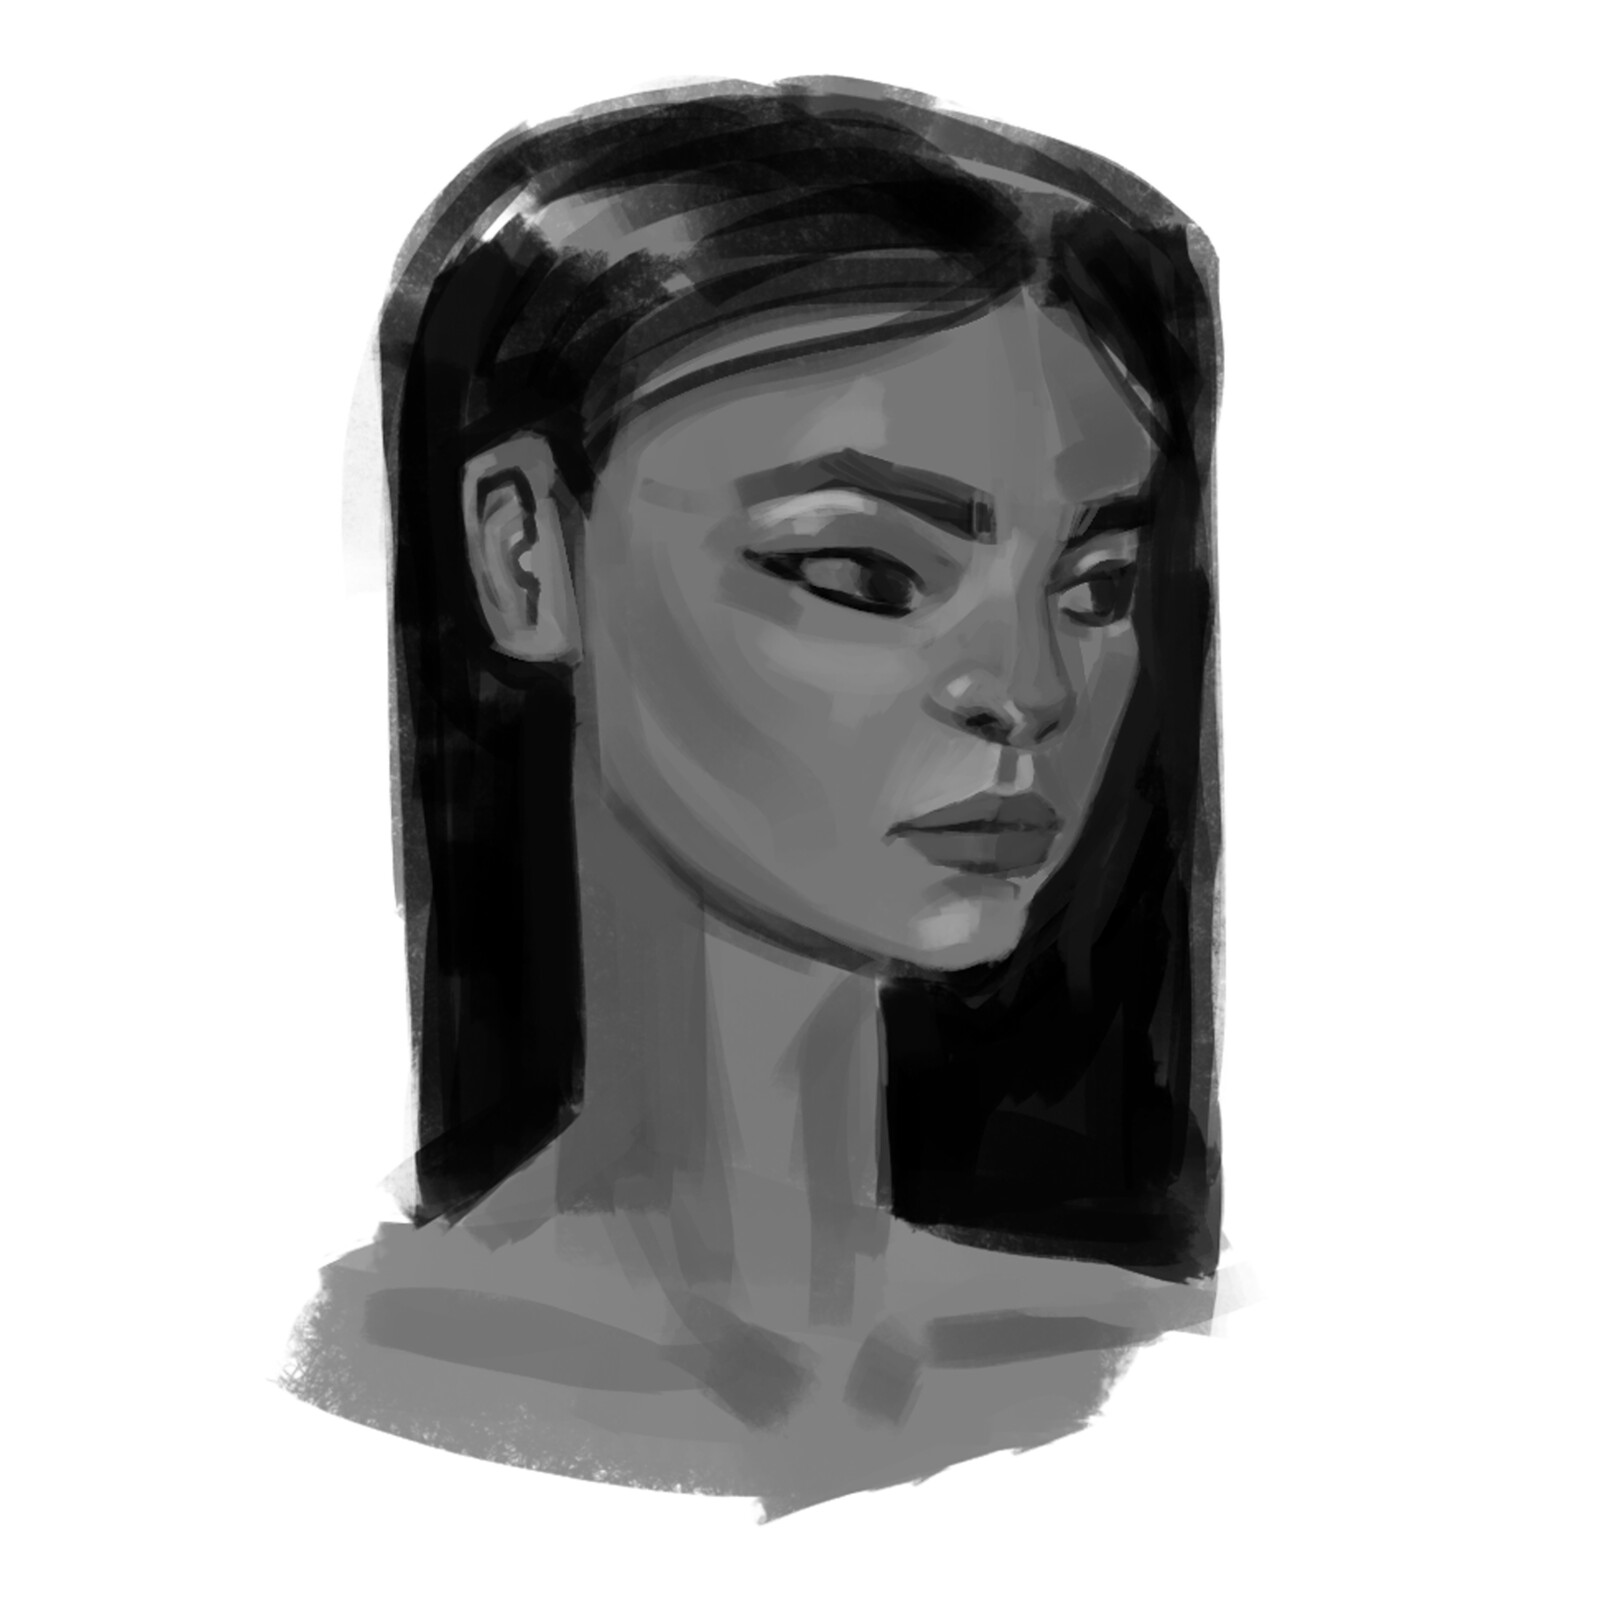 Face Study for new character